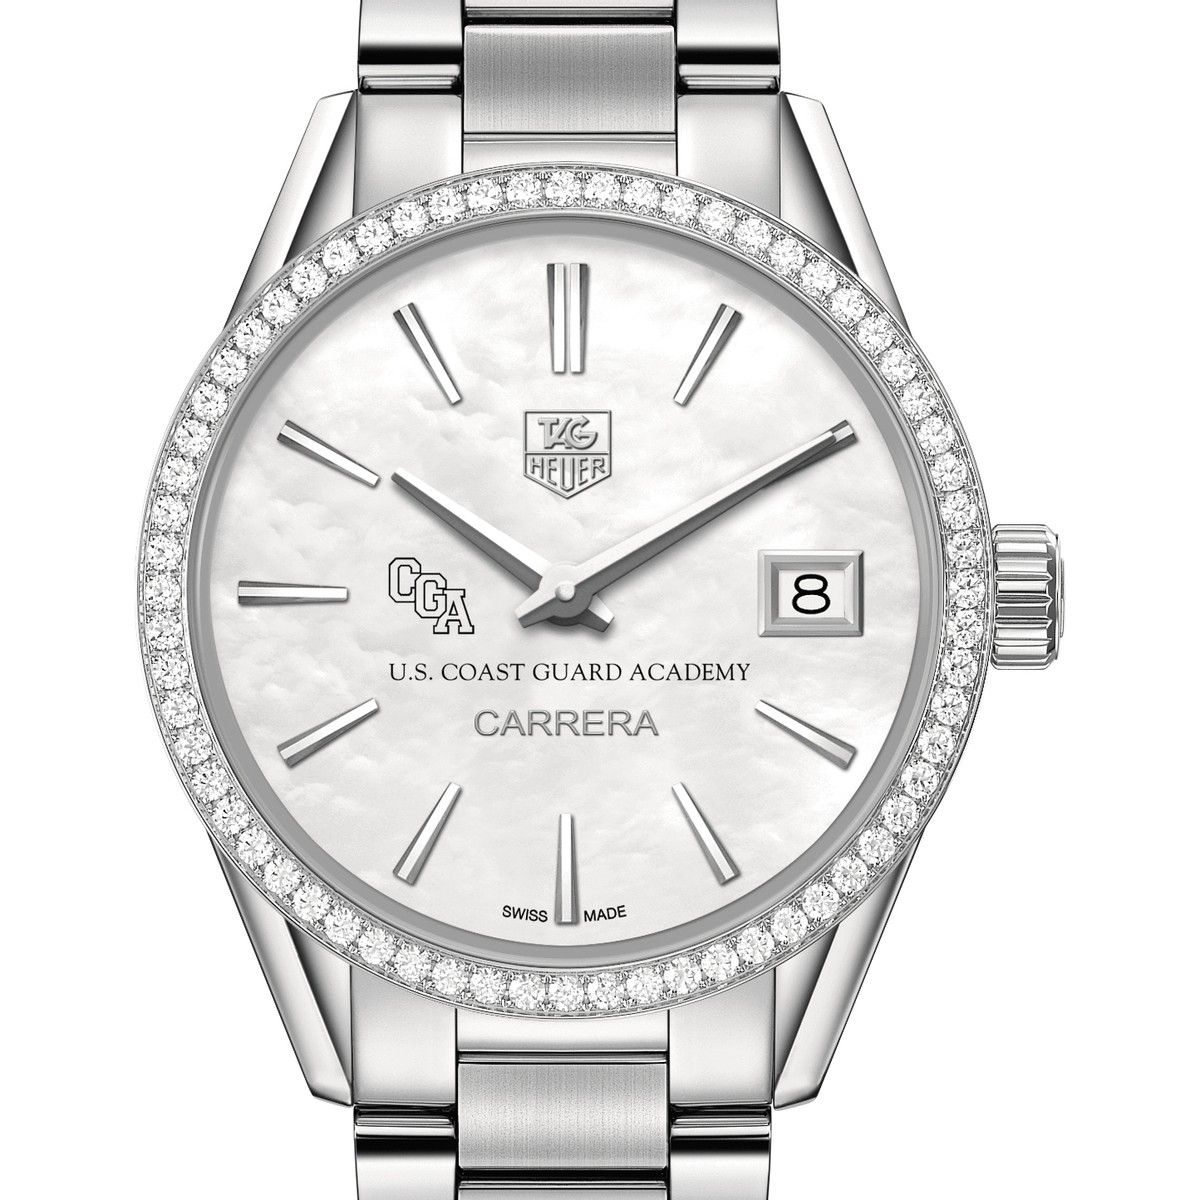 women's tag heuer watches - HD1200×1200